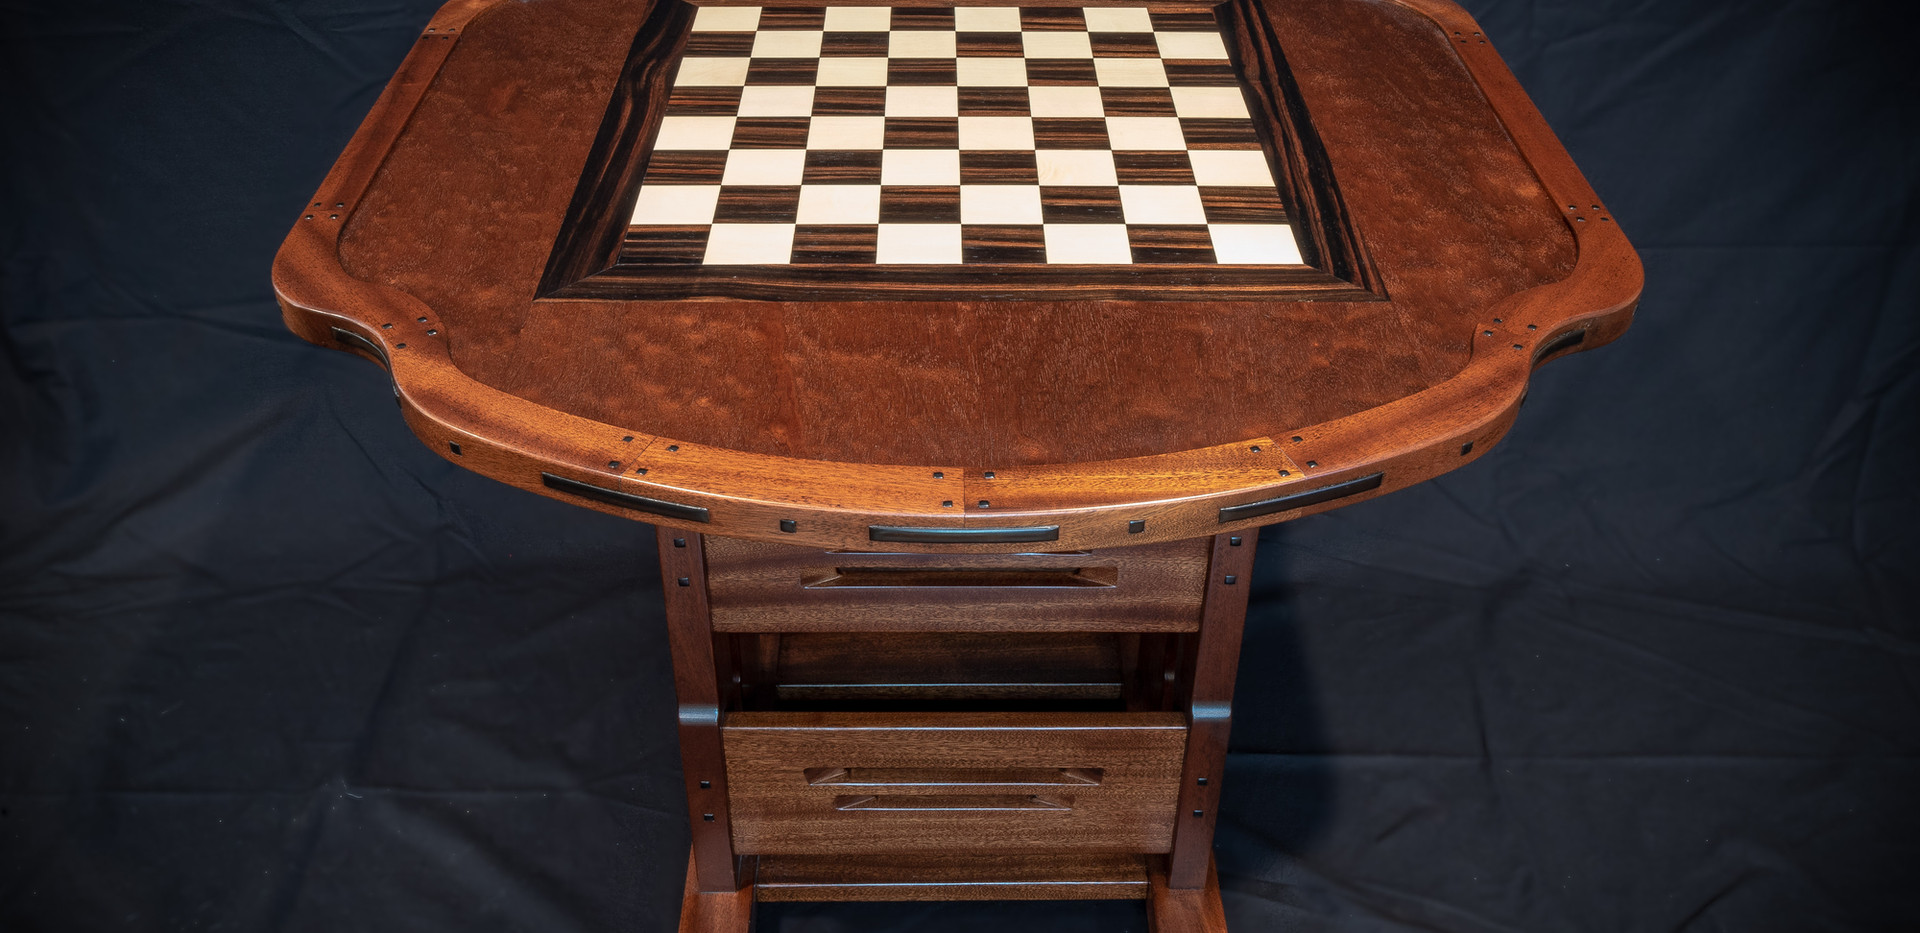 Stix's Woodworks Chess Table 1.jpg